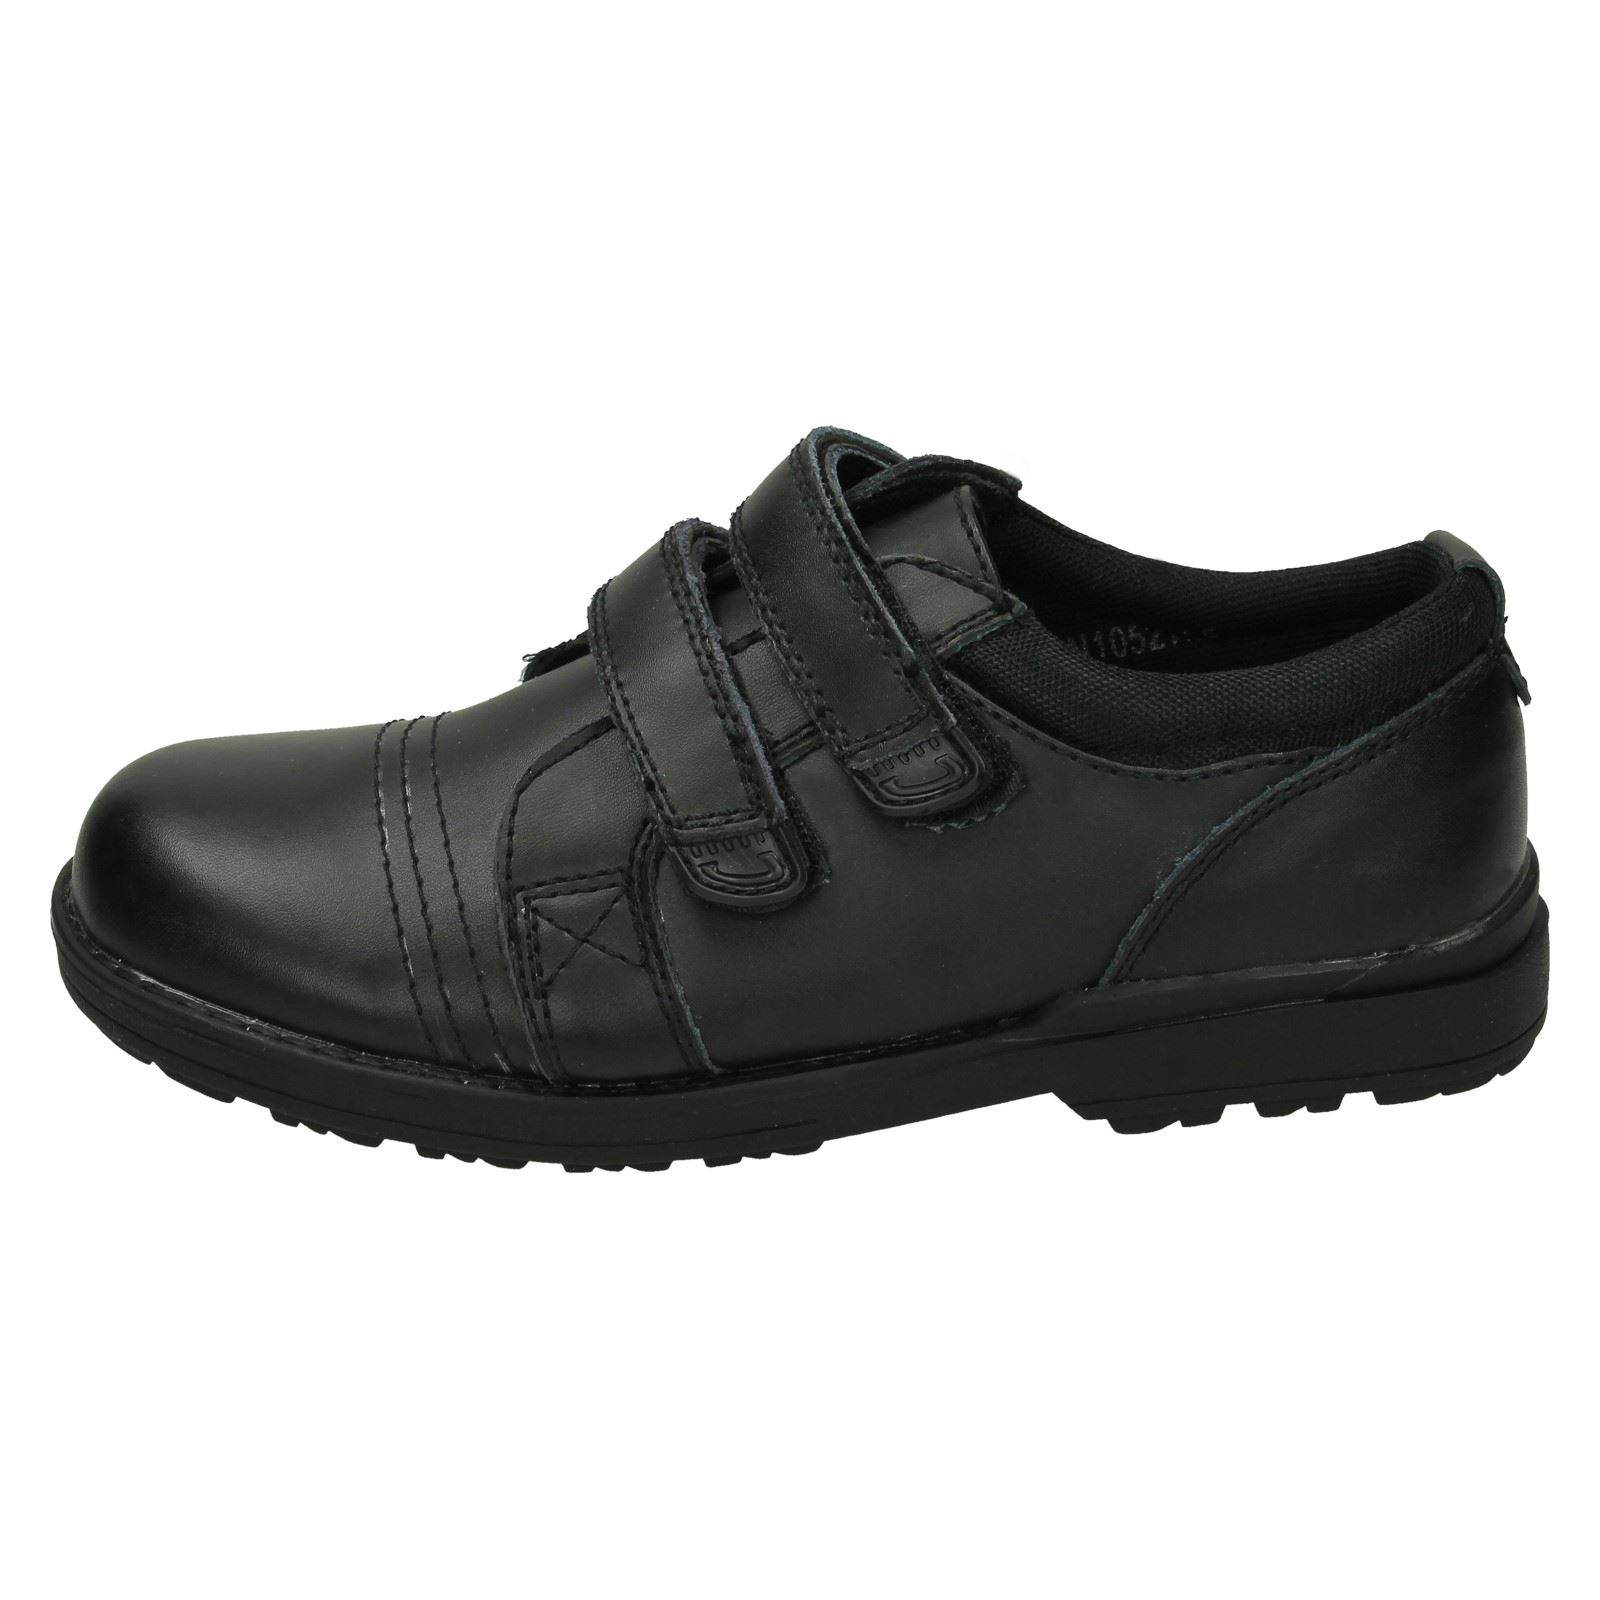 Boys JCDees Flat Casual Shoes